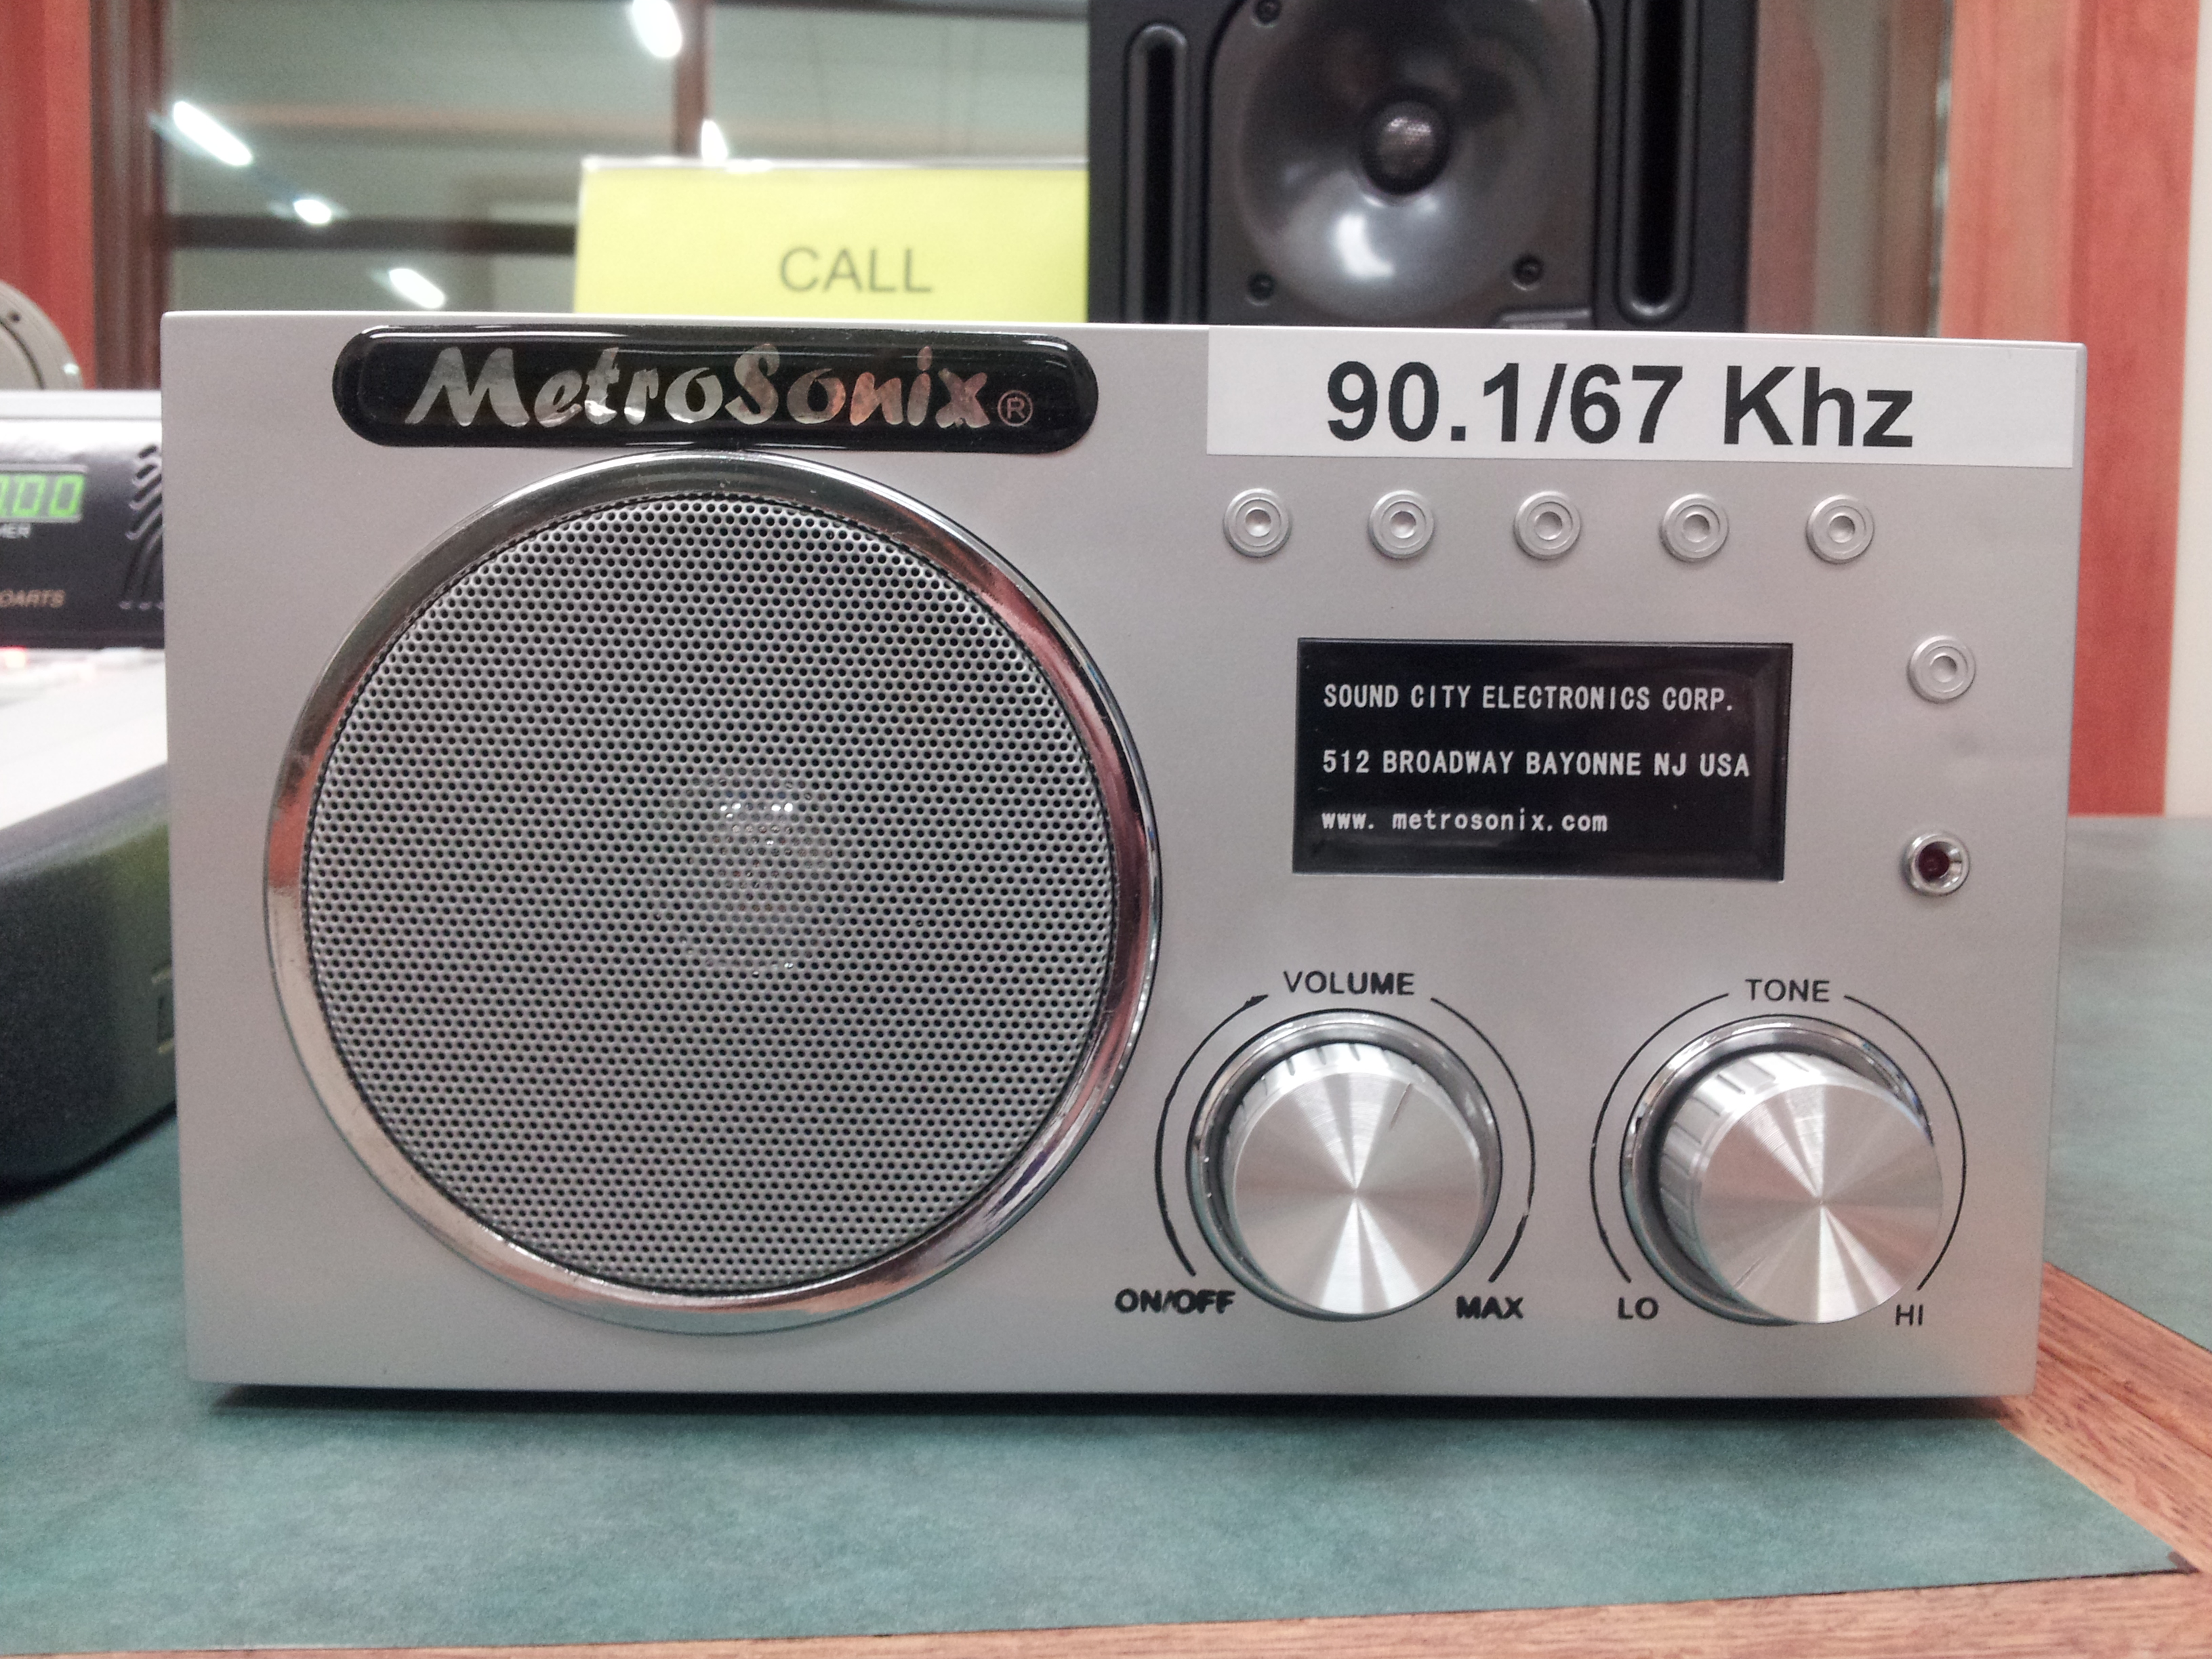 Gray metal radio, Metrosonix brand, large round speaker on the left, 2 small knobs on the bottom right